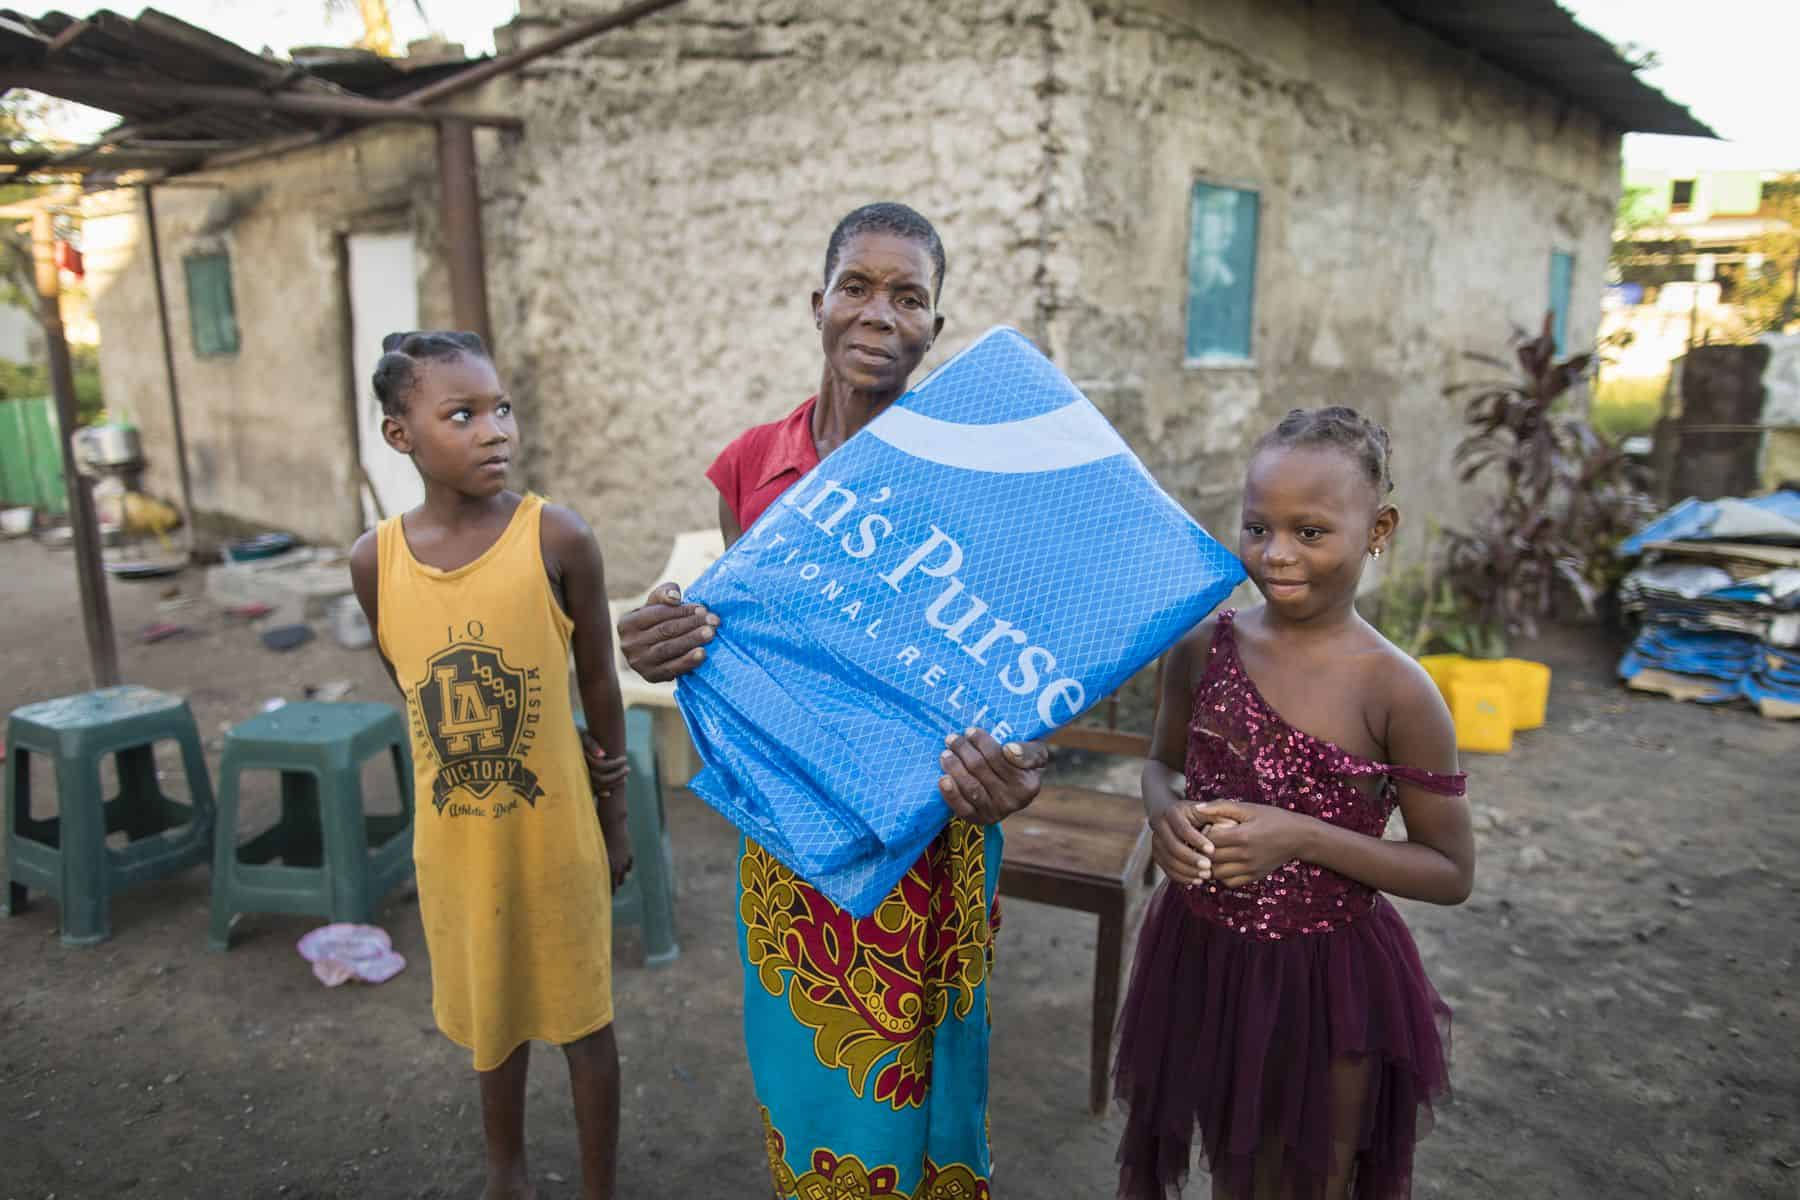 Samaritan's Purse has already started distributing emergency shelter materials to Cyclone Idai survivors in Beira, Mozambique.